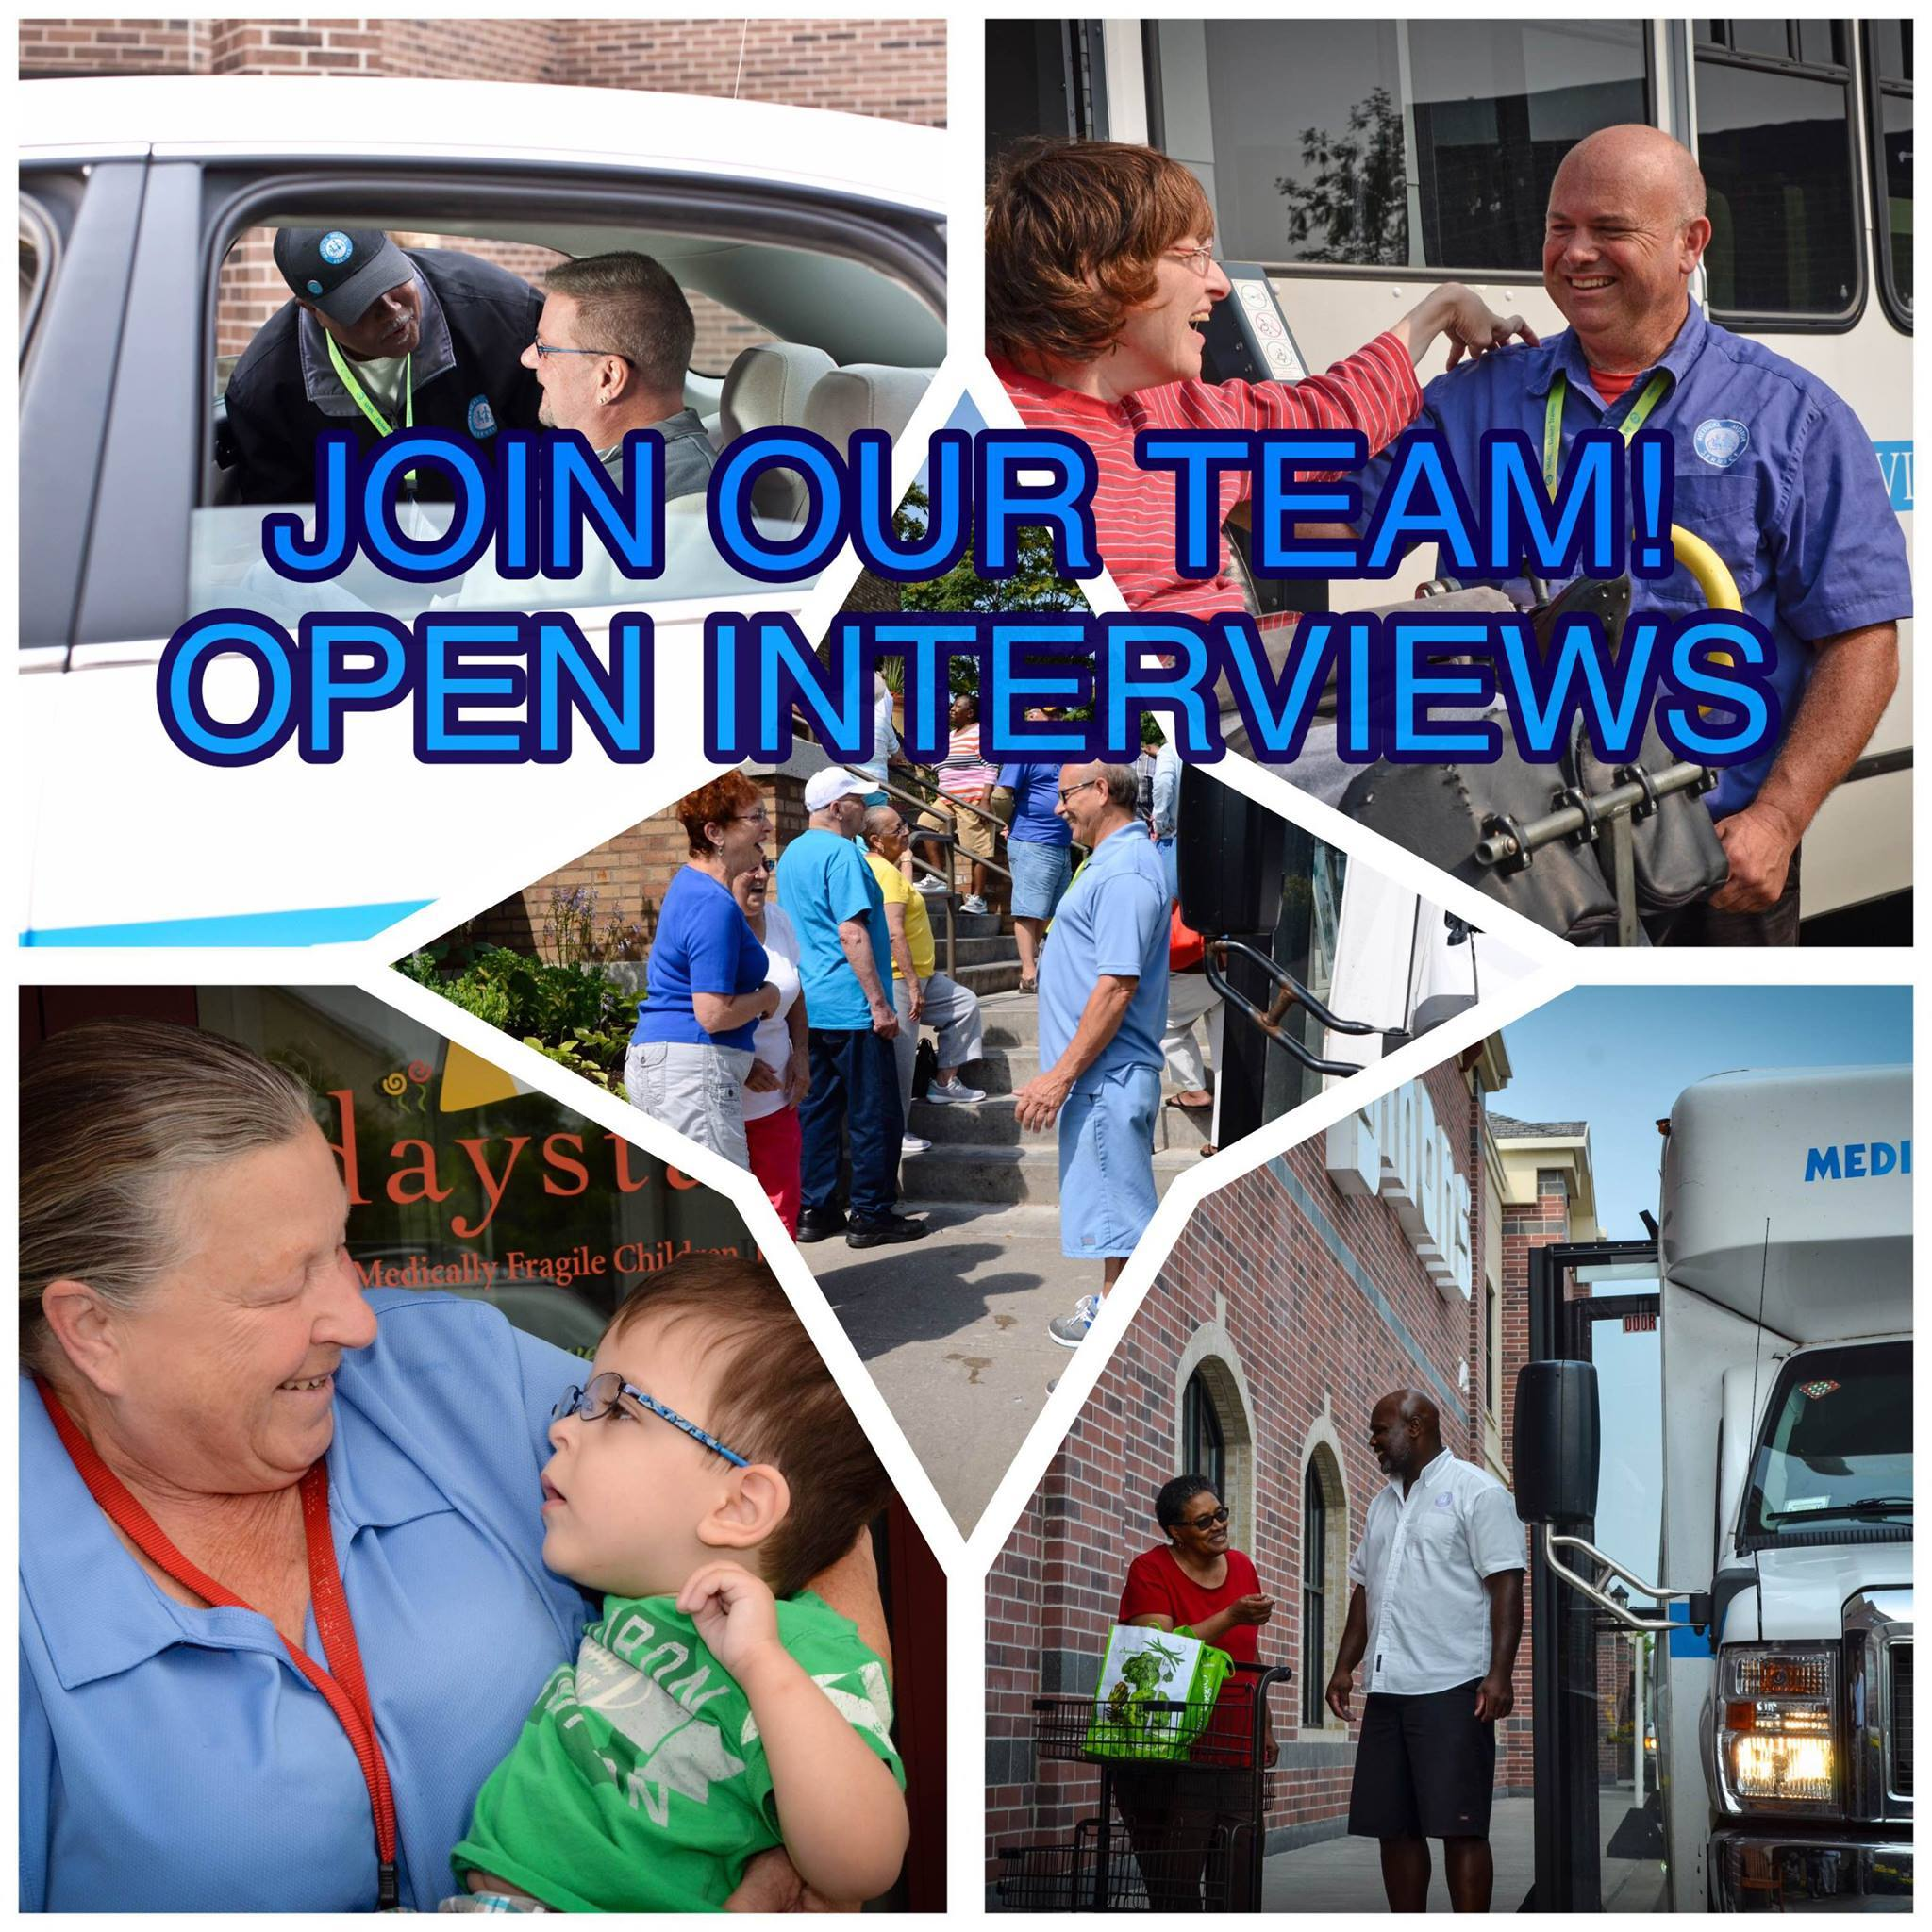 Join our team open interviews medical motor service for Medical motor service rochester ny